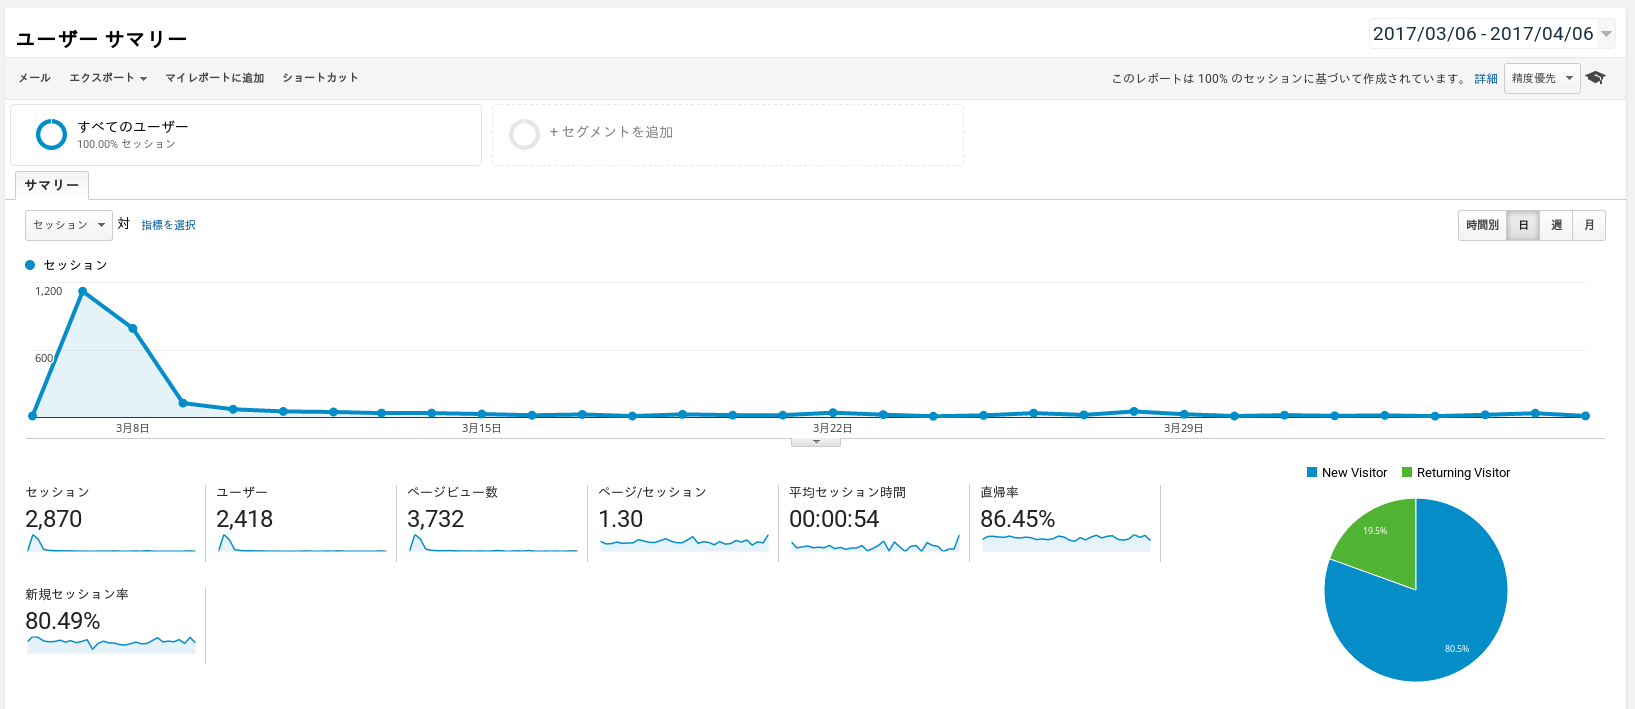 Koipun Site Traffic on Google Analytics